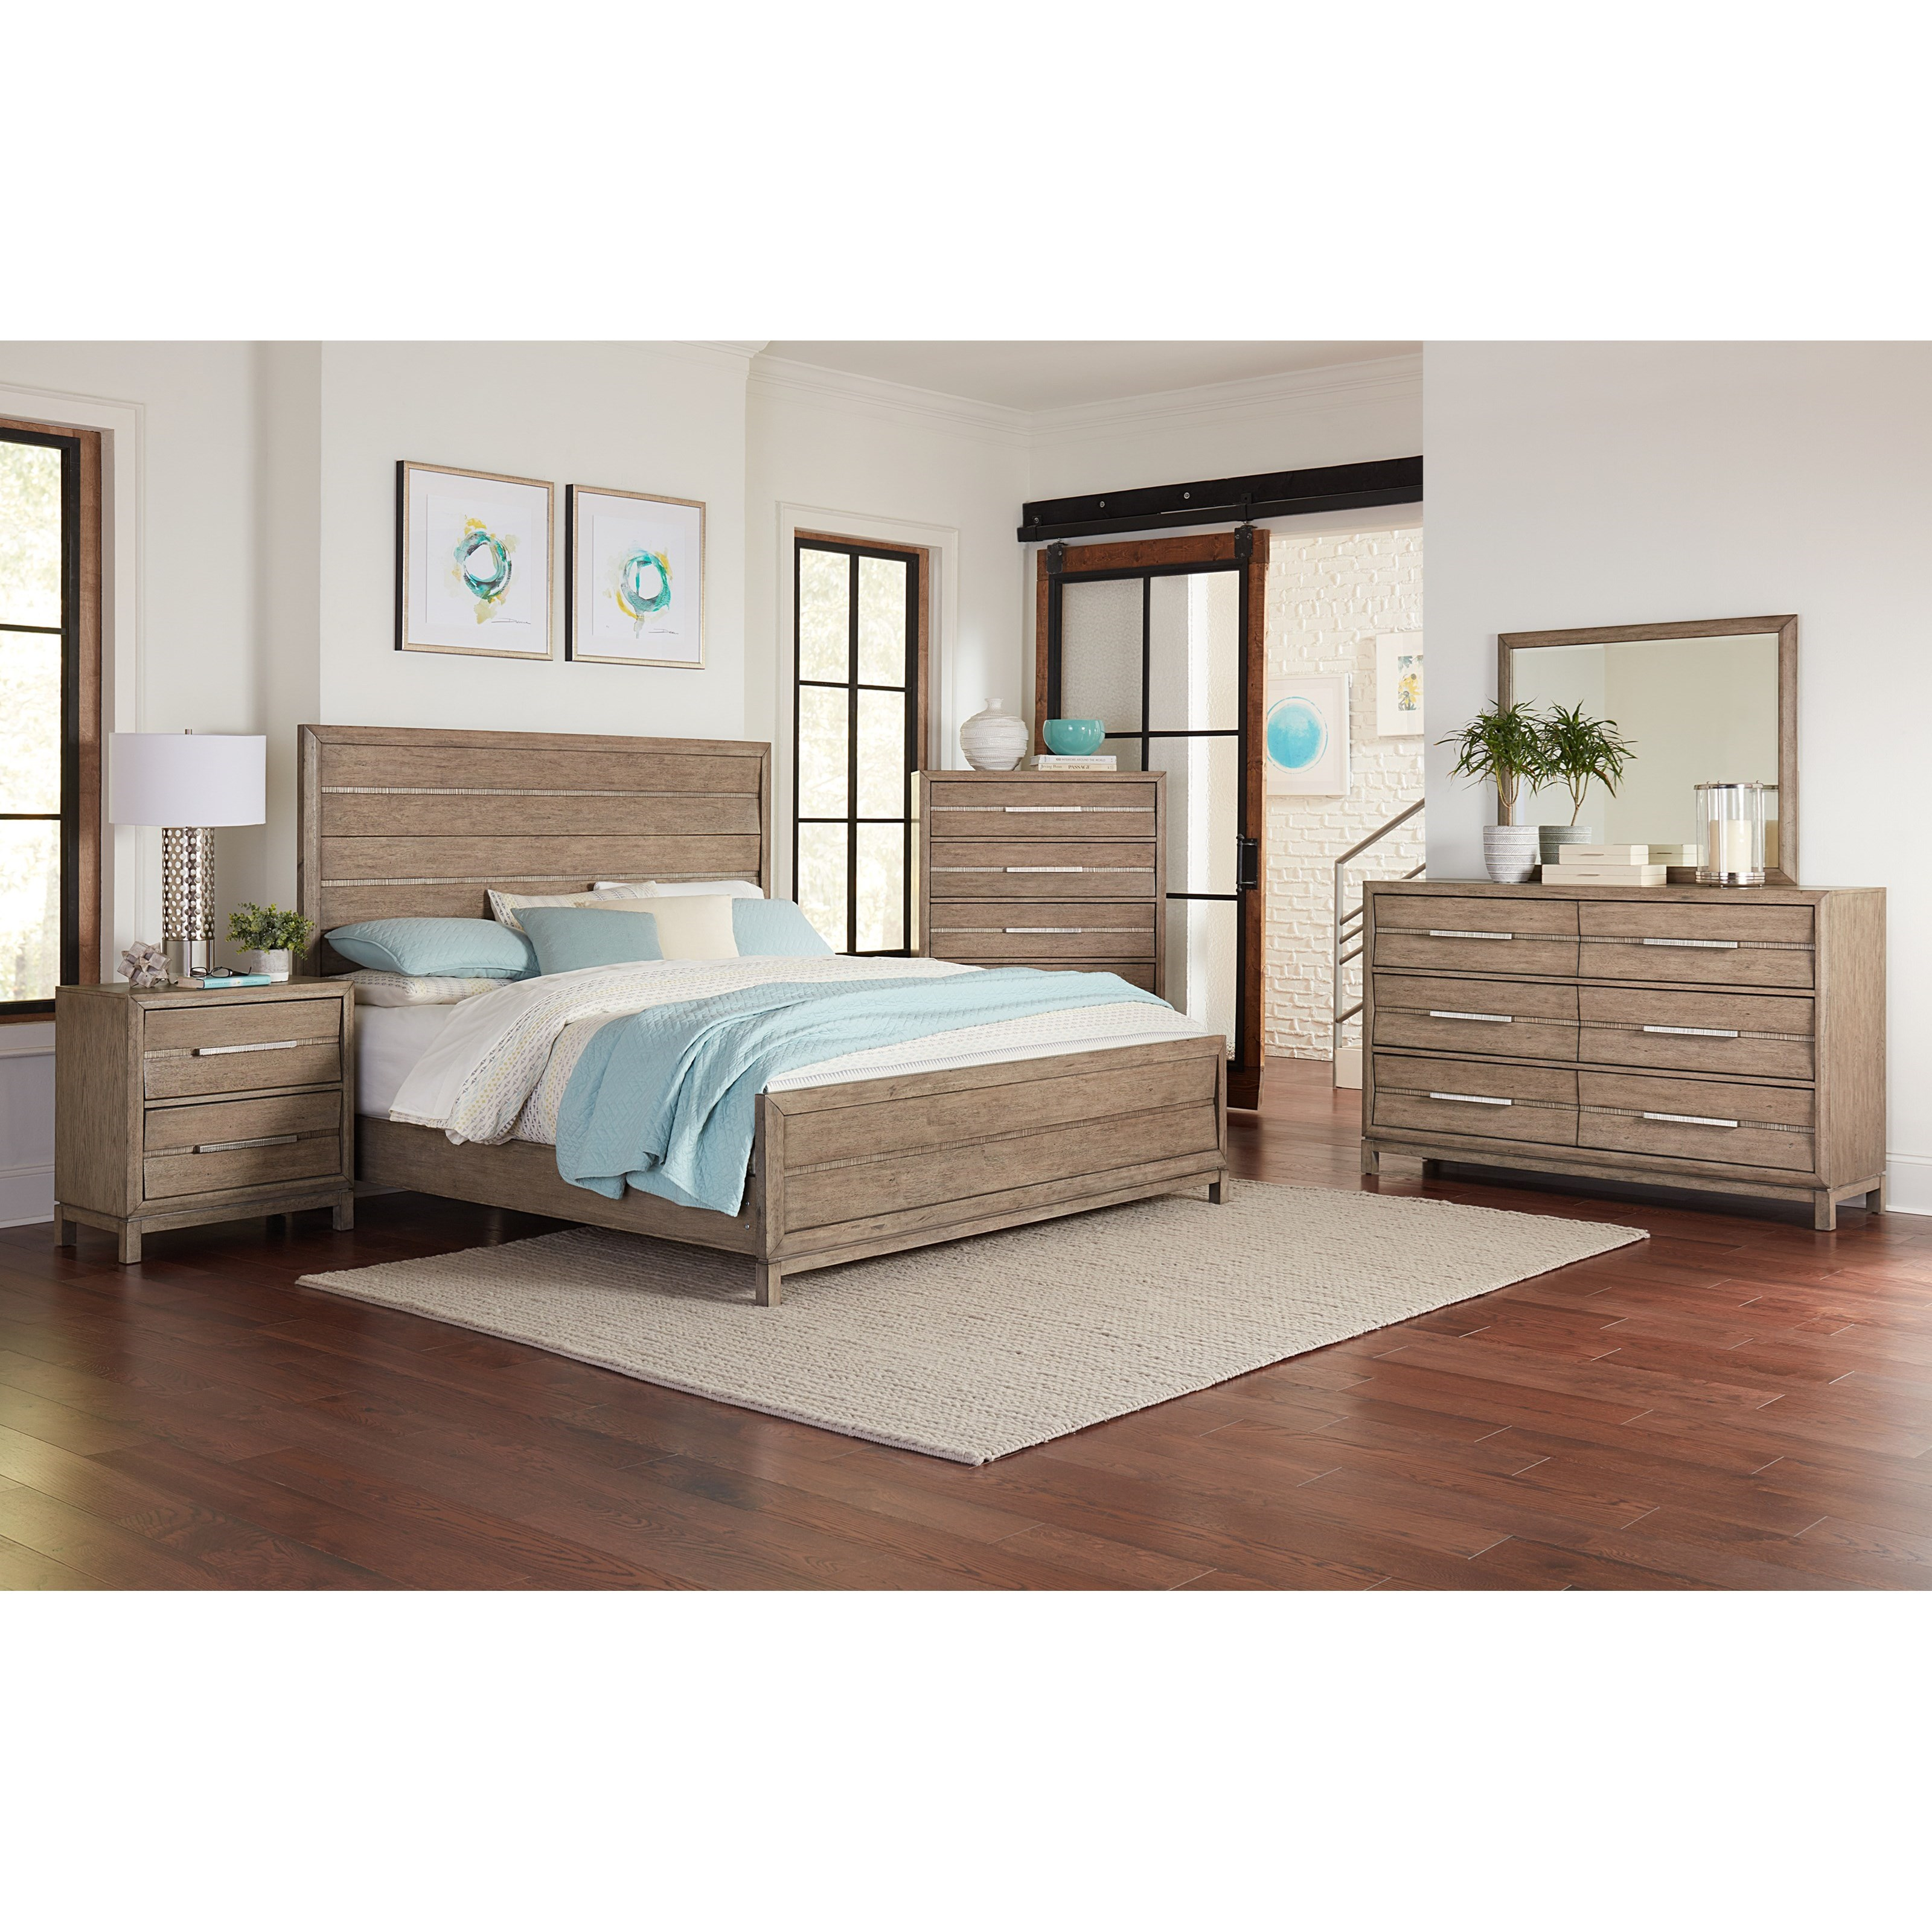 Elliot California King Bedroom Group by Klaussner International at Northeast Factory Direct